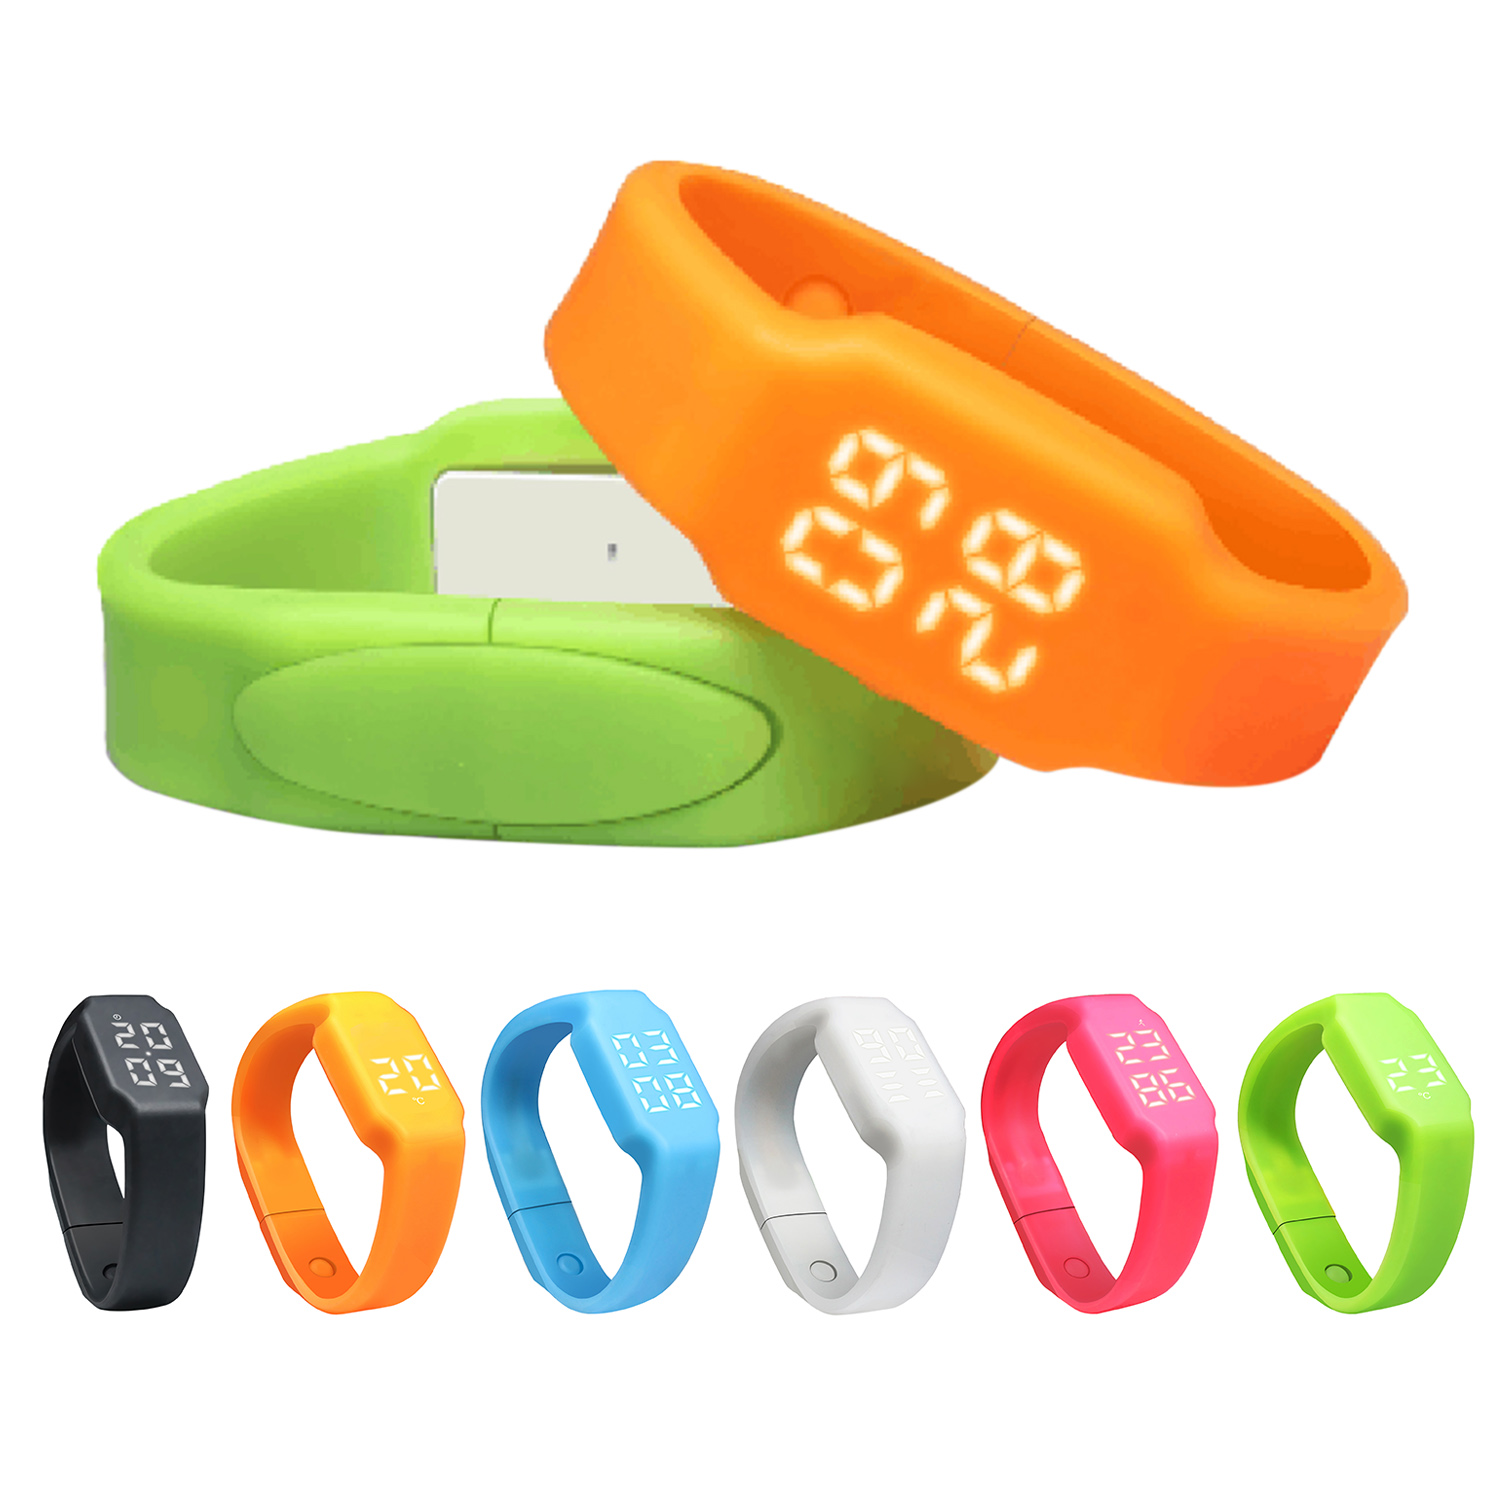 Silicone pedometer smart watch/ Promotional product fully customized  to your requirement UK Supplier